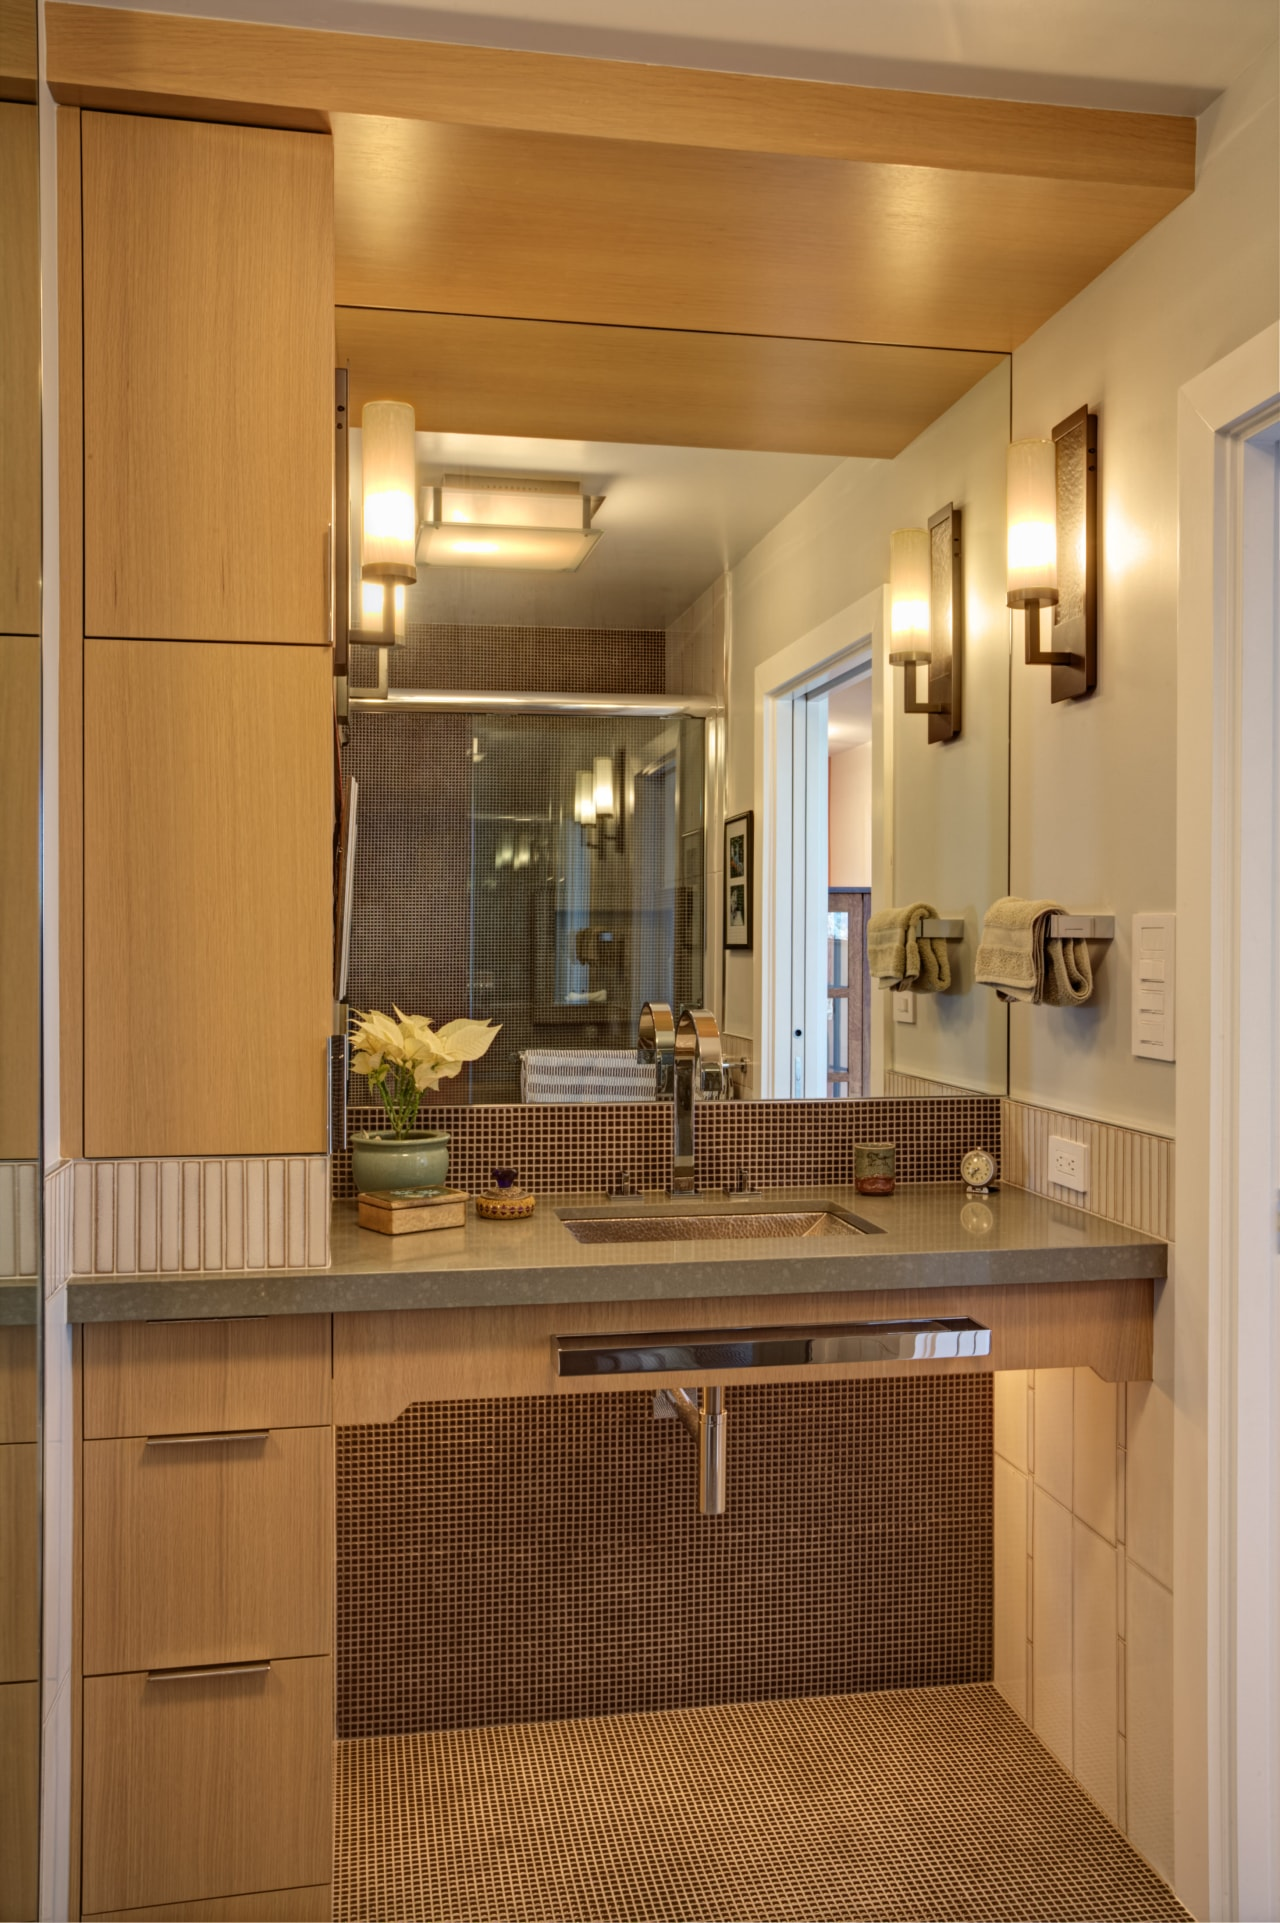 The tiled guest bathroom has an artisanal feel. cabinetry, countertop, interior design, kitchen, room, brown, orange